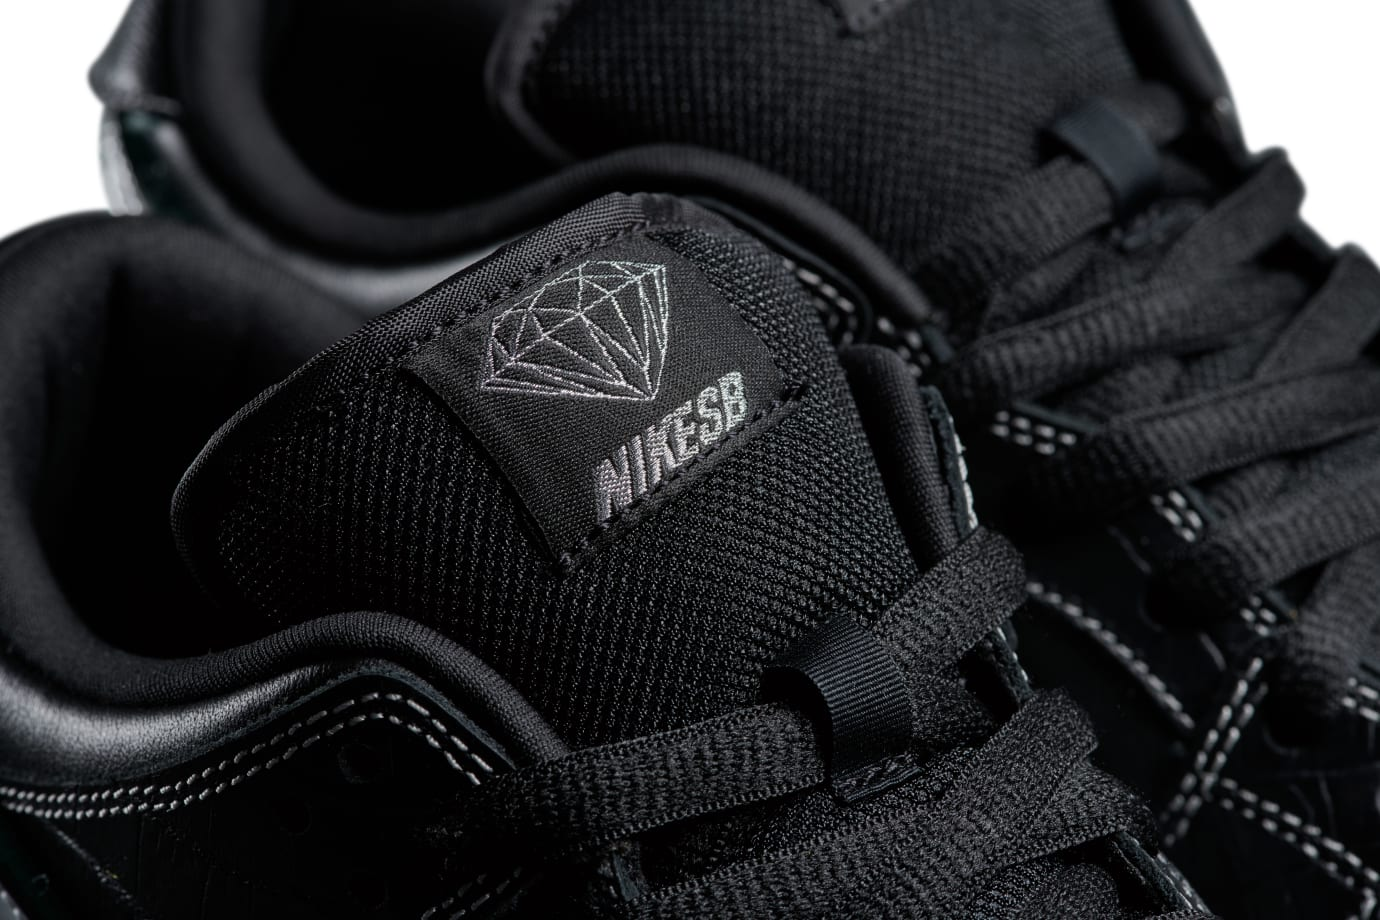 Diamond Supply Co. x Nike SB Dunk Low 'Black' (Tongue)